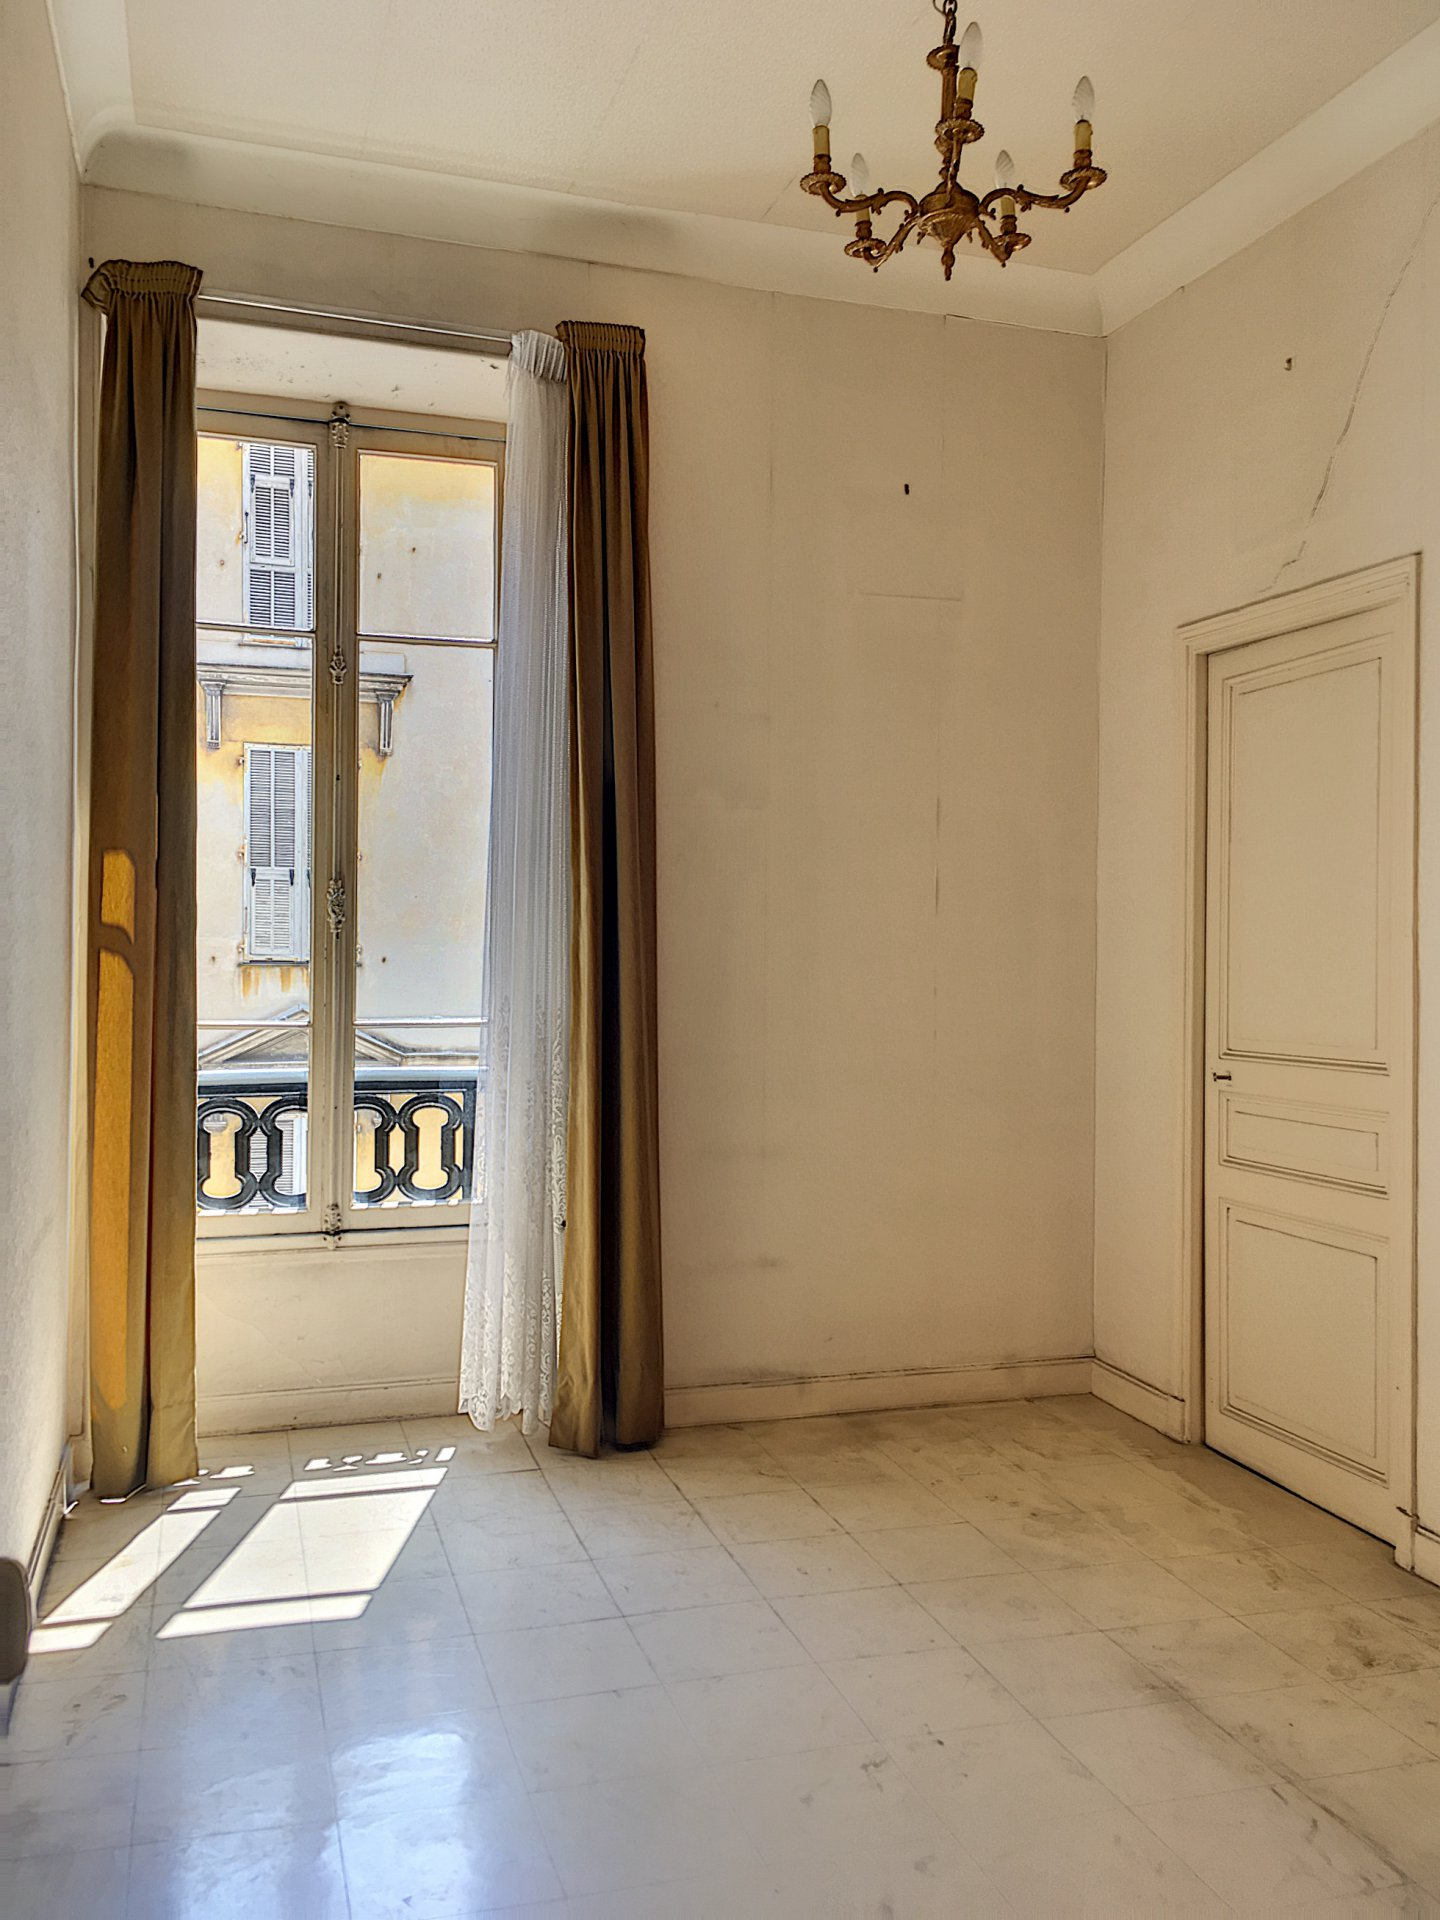 Appartement - NICE - 06000 - 3 chambres - 5 pièces